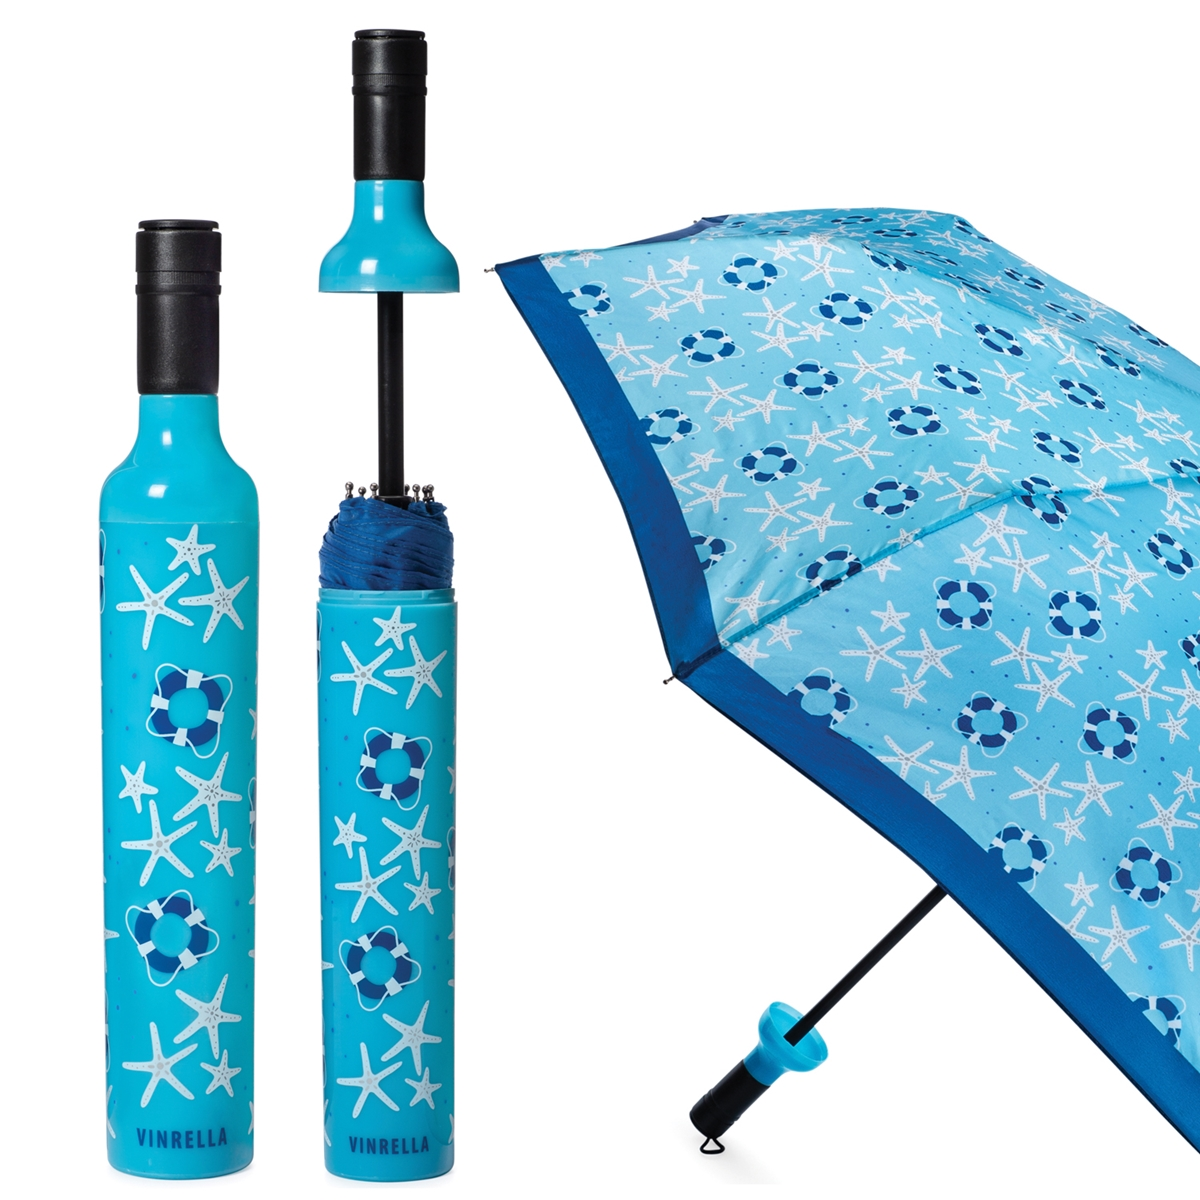 Coastal Days Umbrella